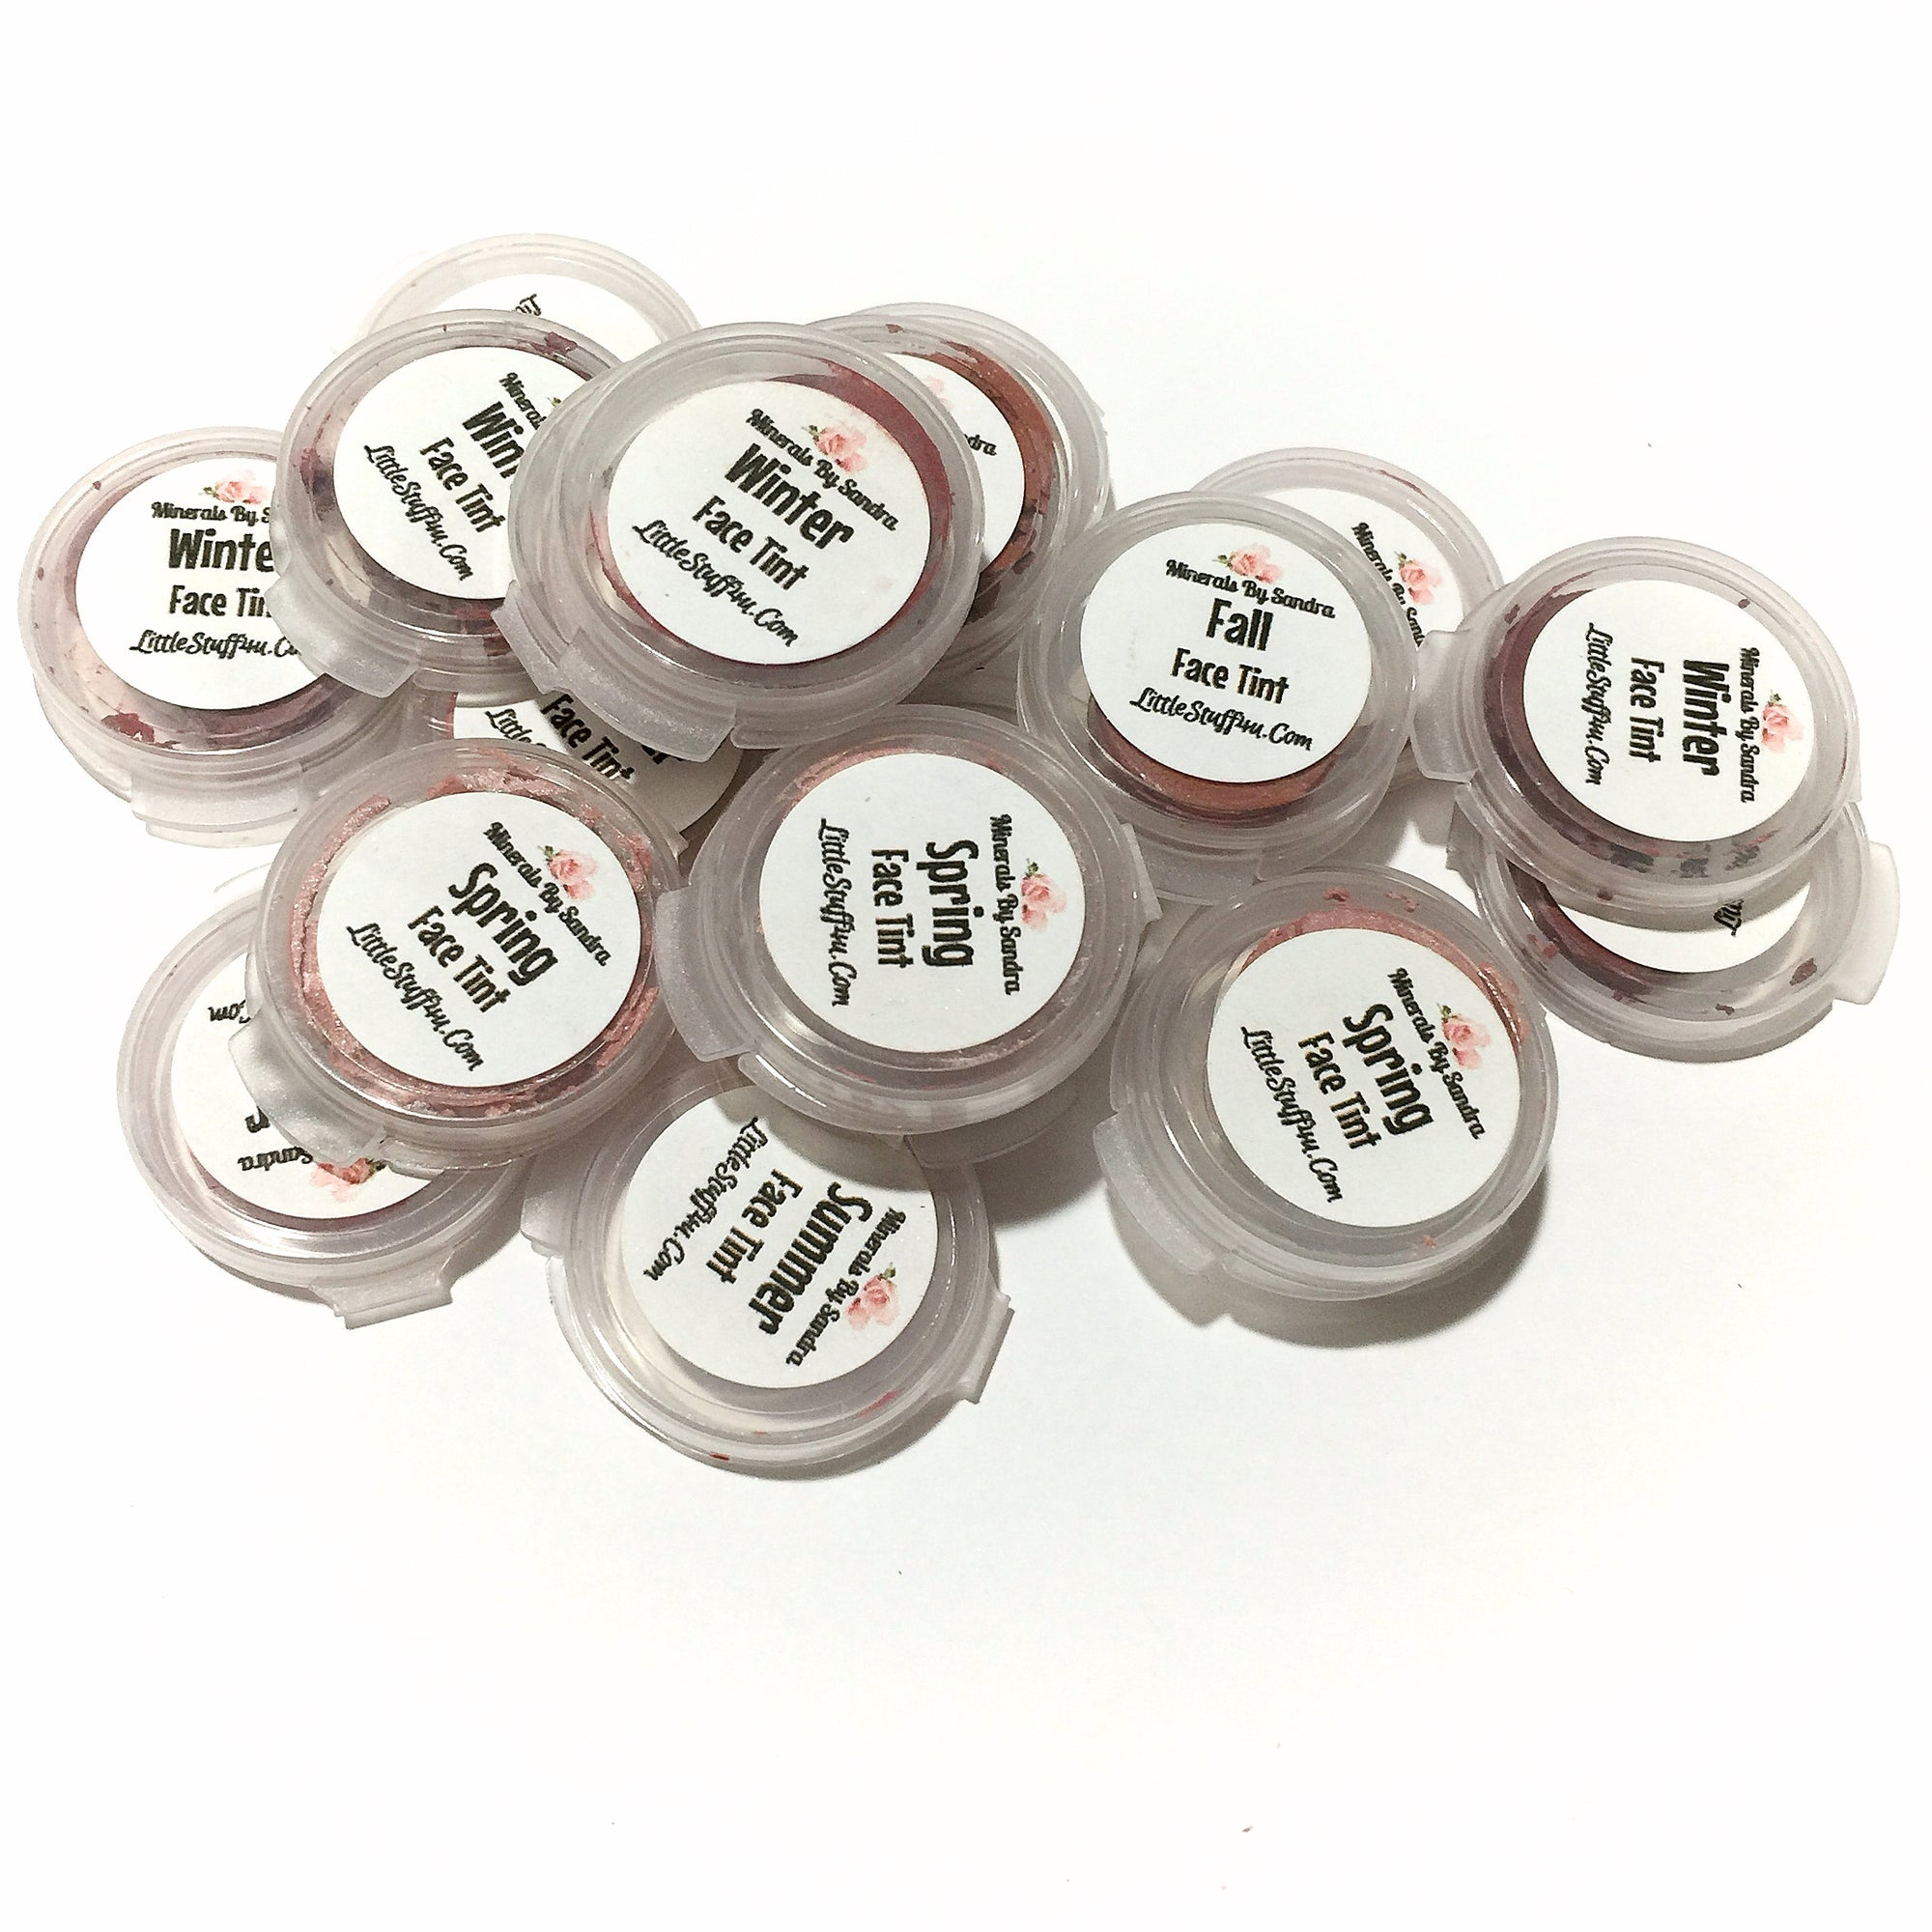 Organic Lip Cheek Tint Samples - LittleStuff4u Minerals